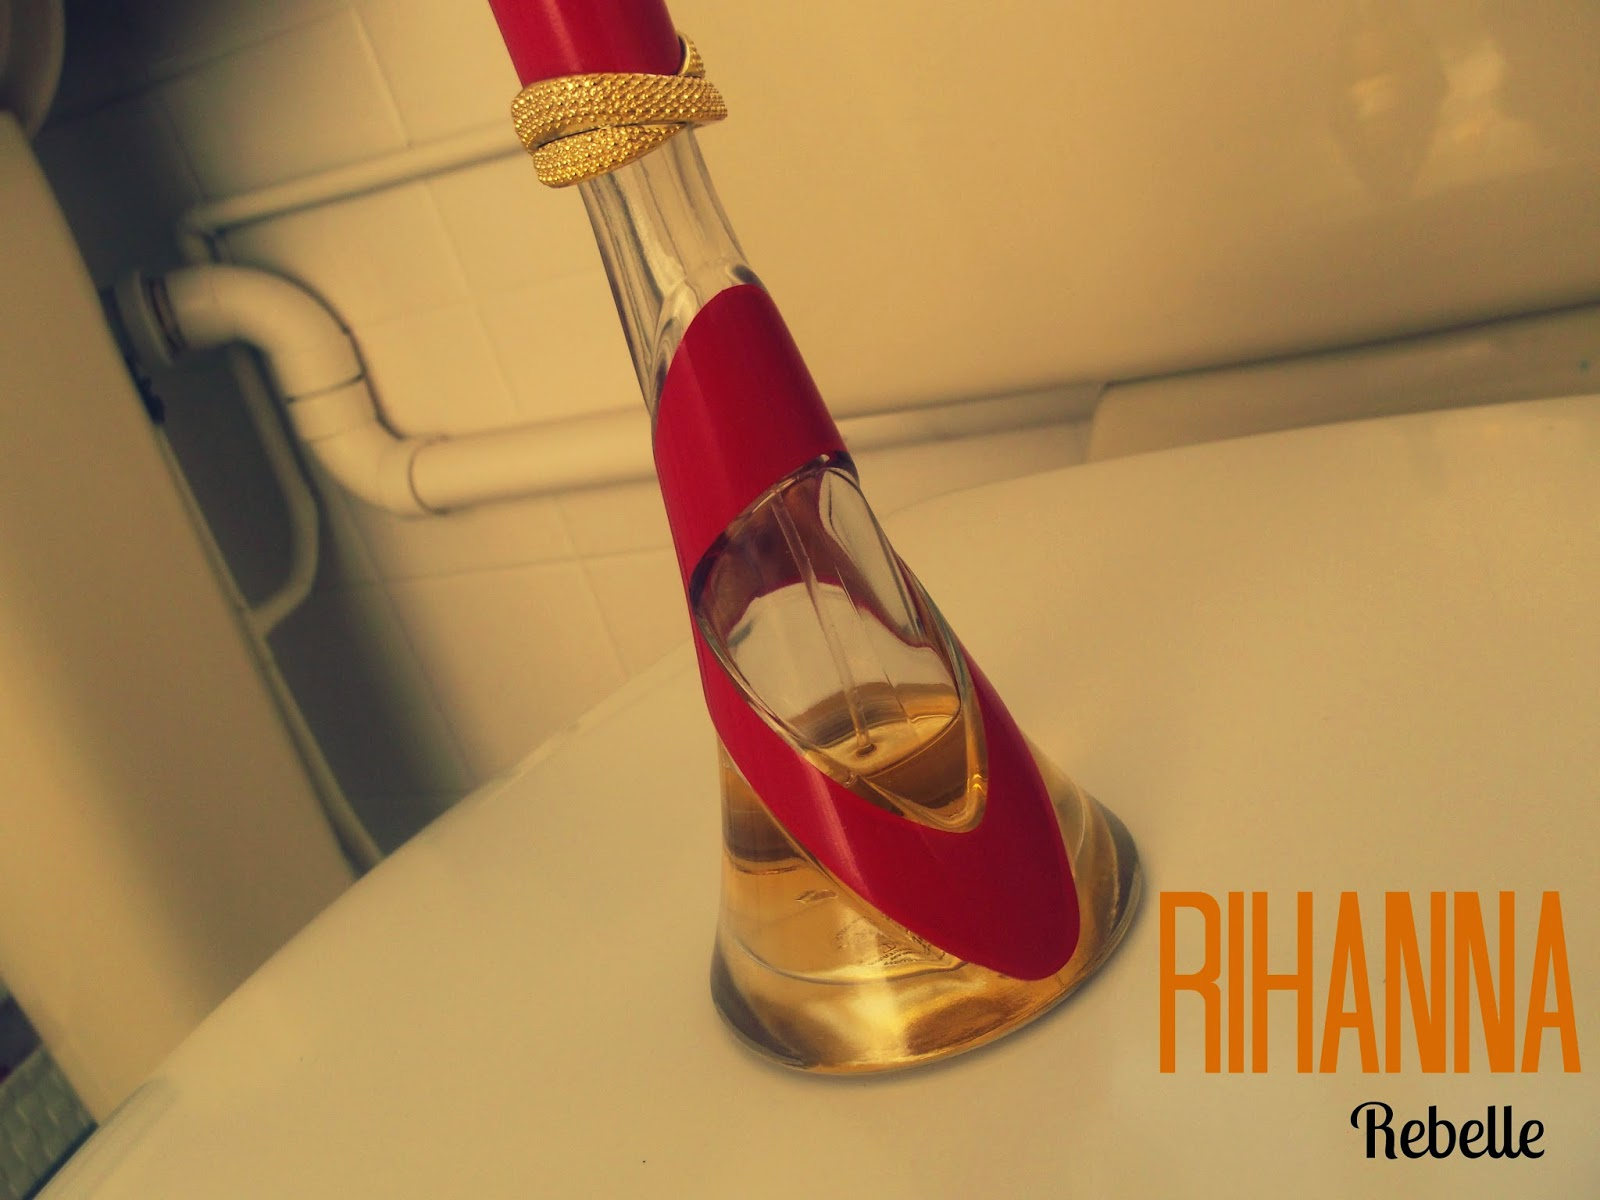 Rihanna Rebelle Perfume Review